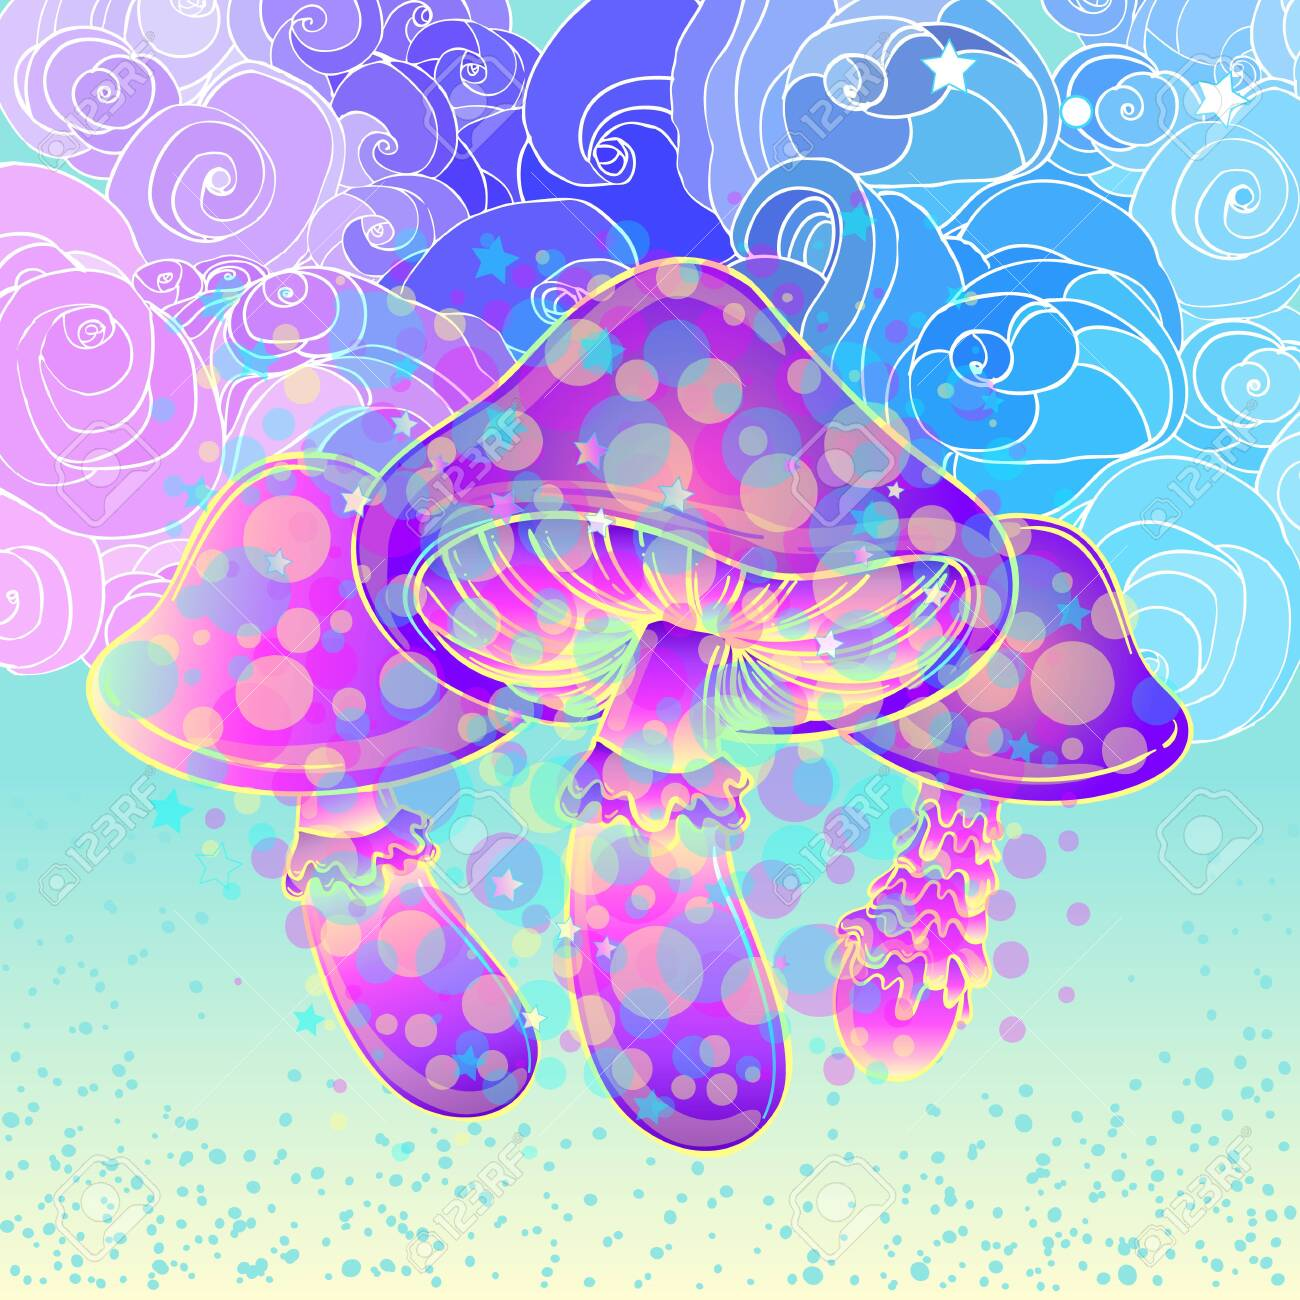 Magic mushrooms over sacred geometry. Psychedelic hallucination. Vibrant vector illustration. 60s hippie colorful art. - 148692618